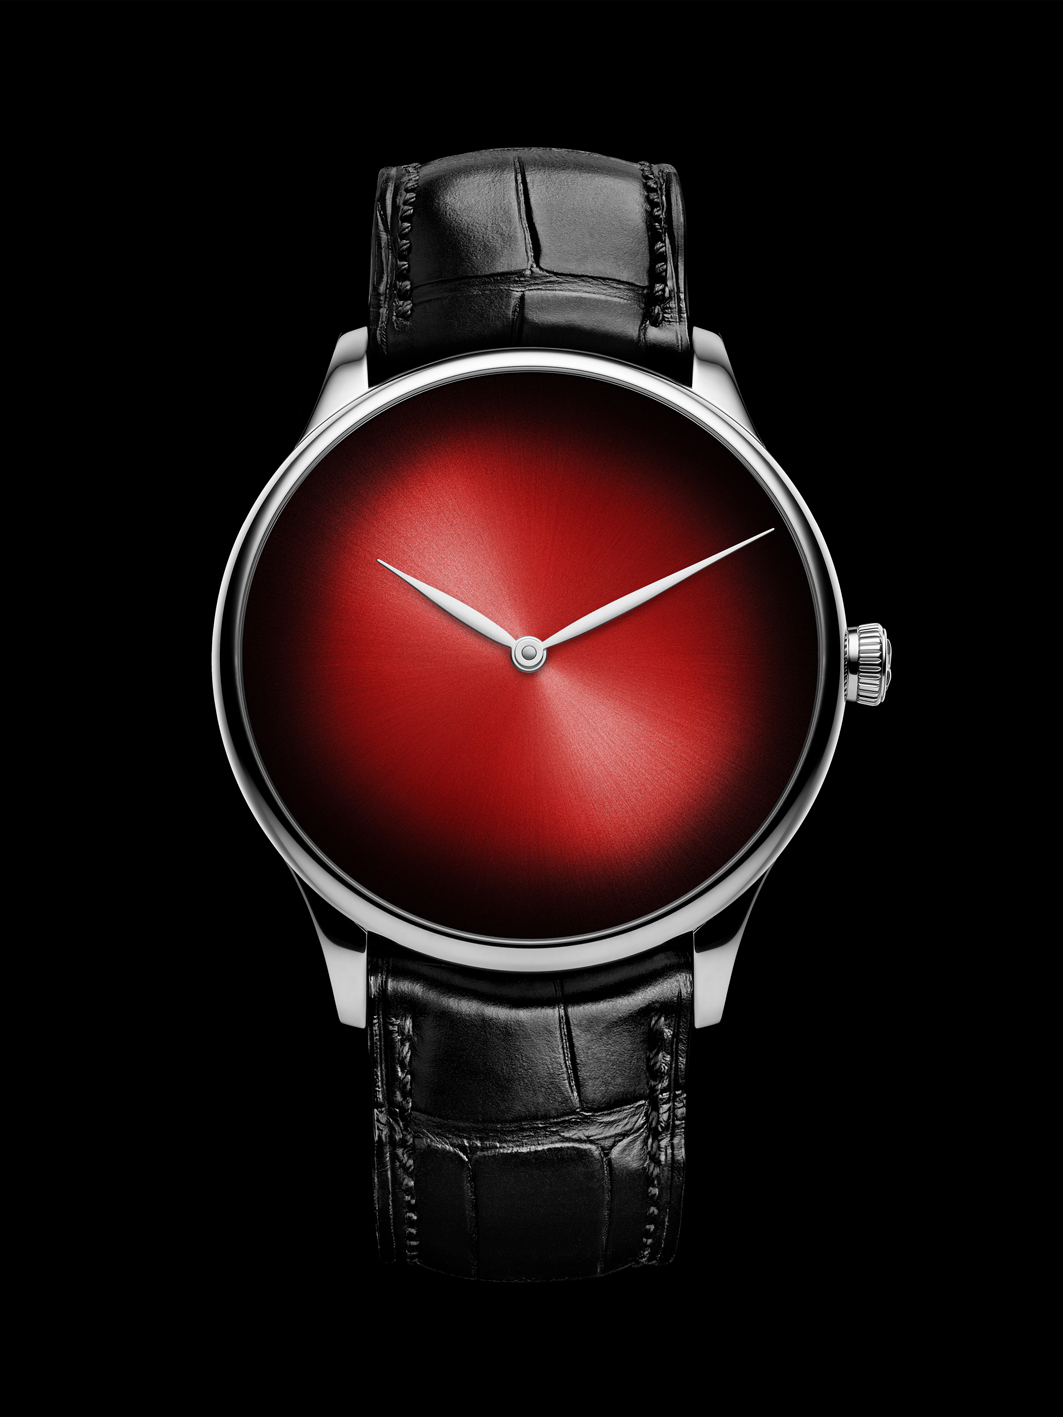 H. Moser Venturer Concept Only Watch Background_RGB